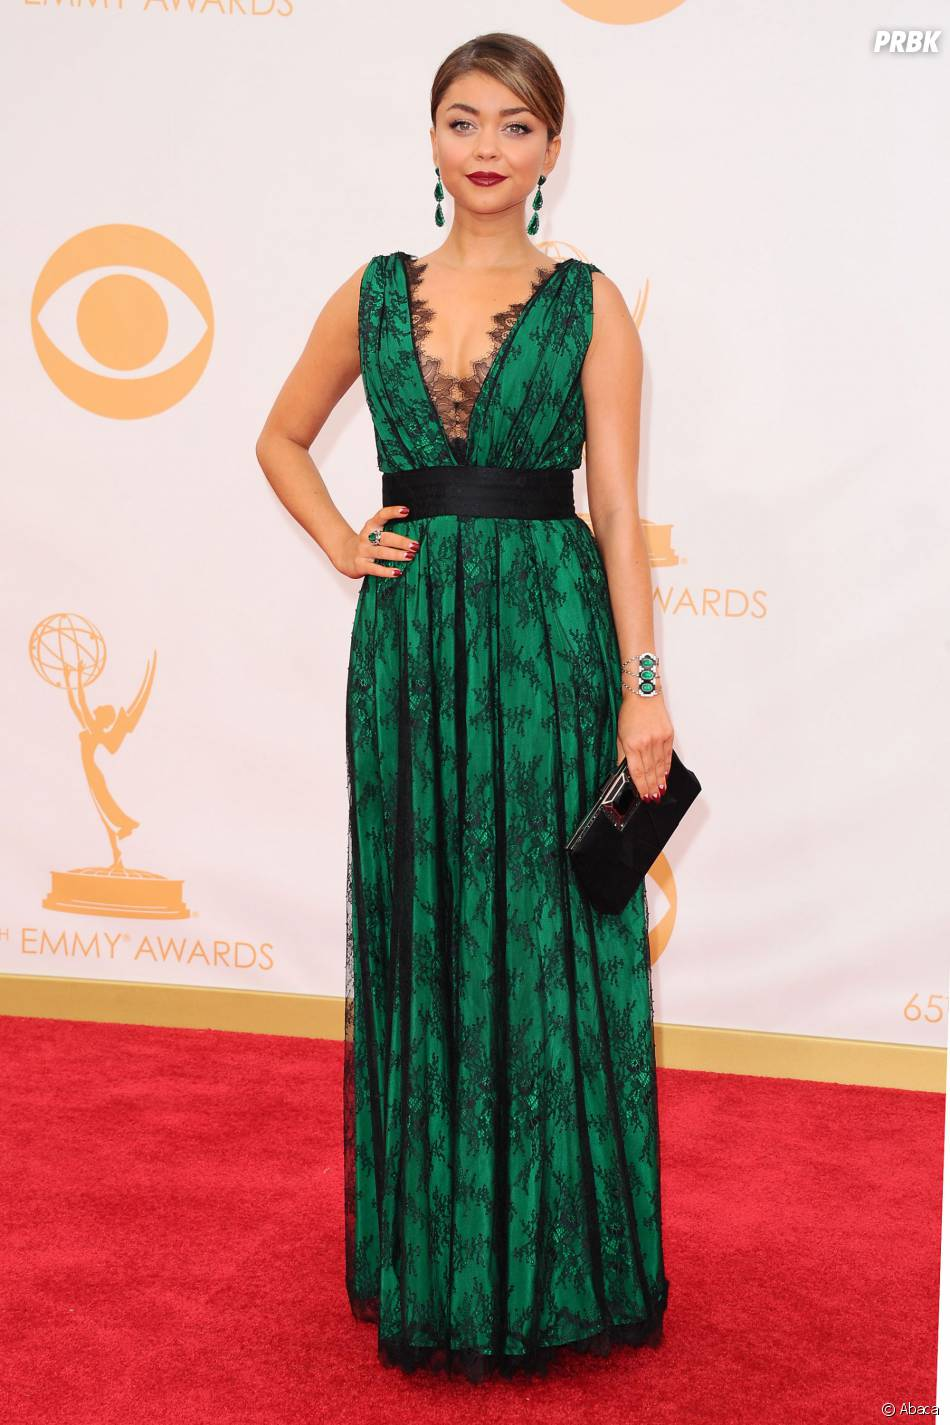 Sarah Hyland aux Emmy Awards 2013 le 22 septembre 2013 à Los Angeles